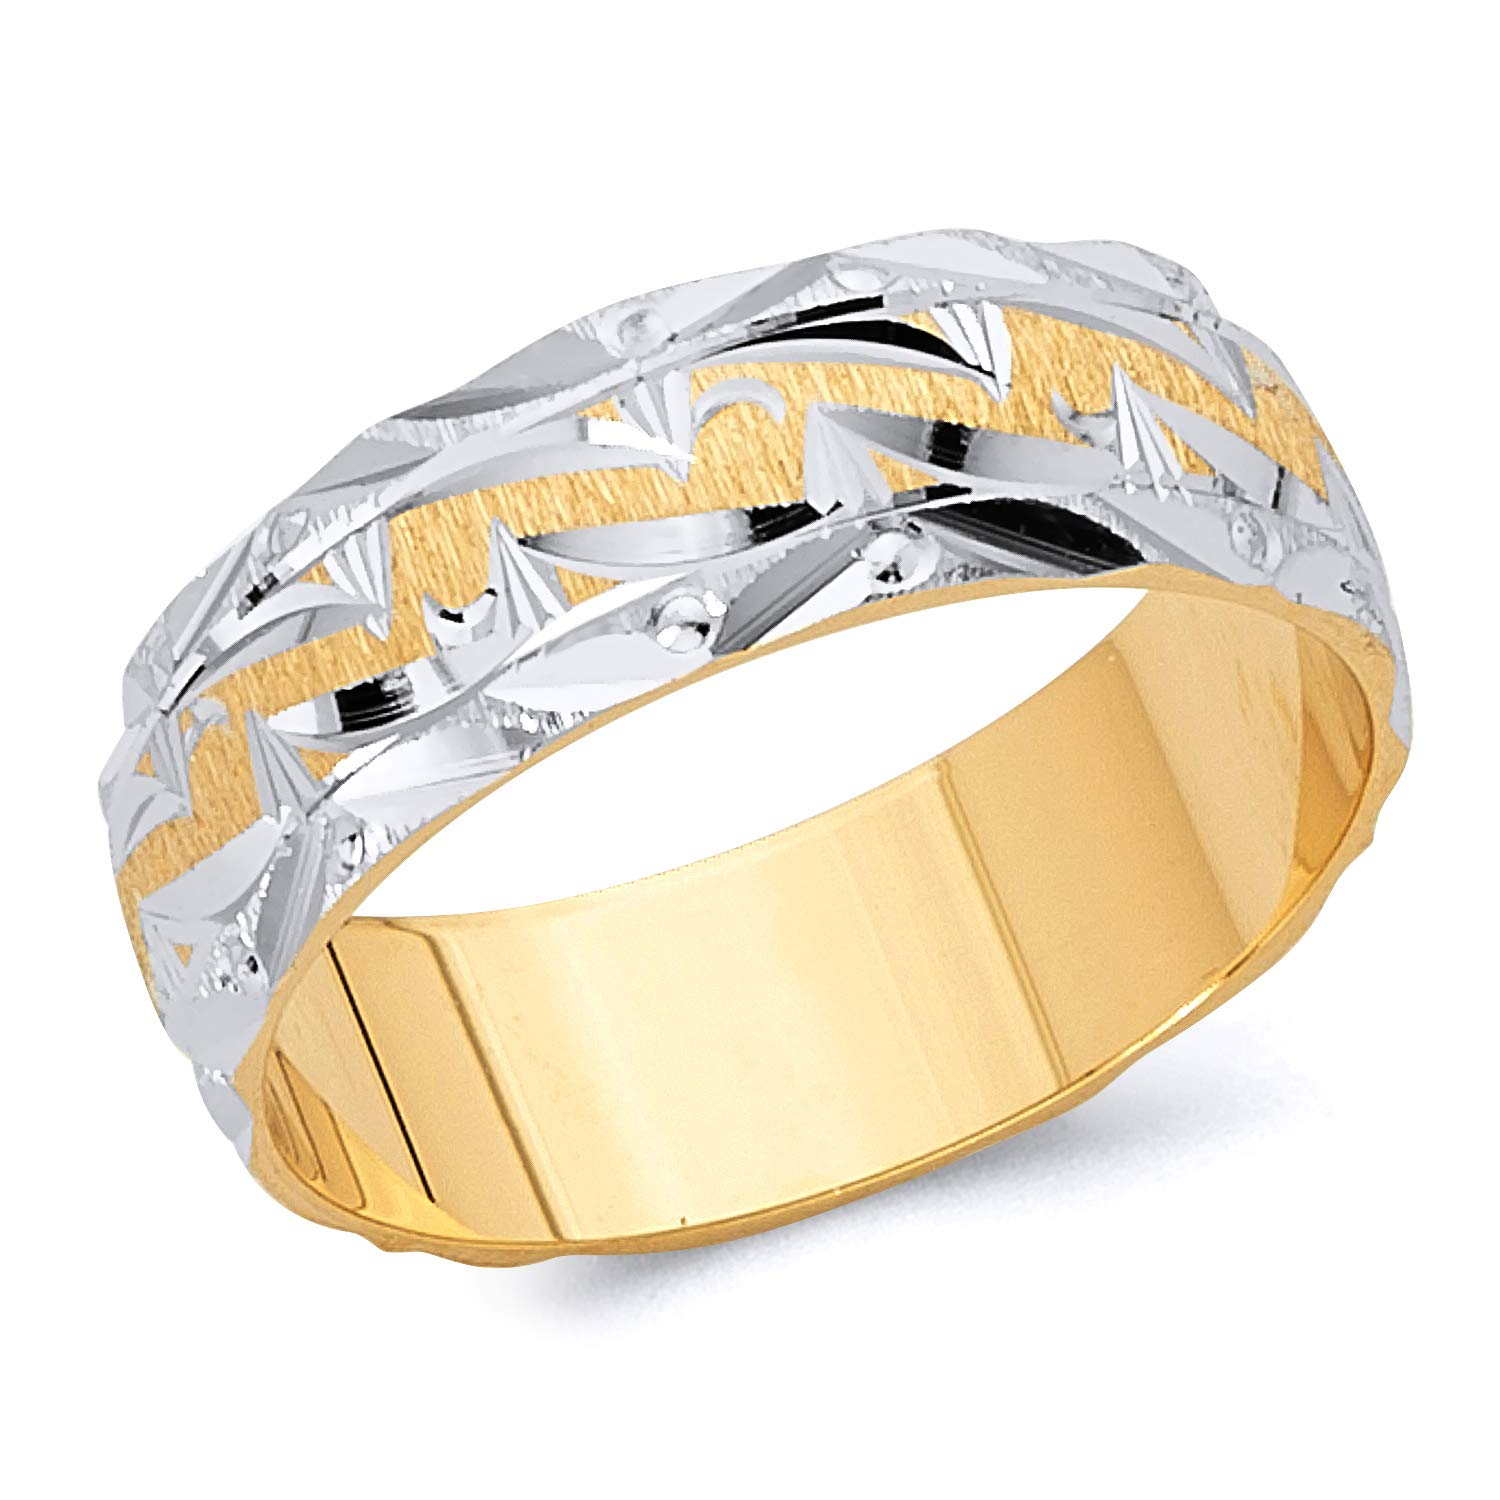 Wellingsale 14k Two 2 Tone White and Yellow Gold Polished Satin 6MM Diamond Cut Classic Fit Wedding Band Ring - Size 11.5 by Wellingsale